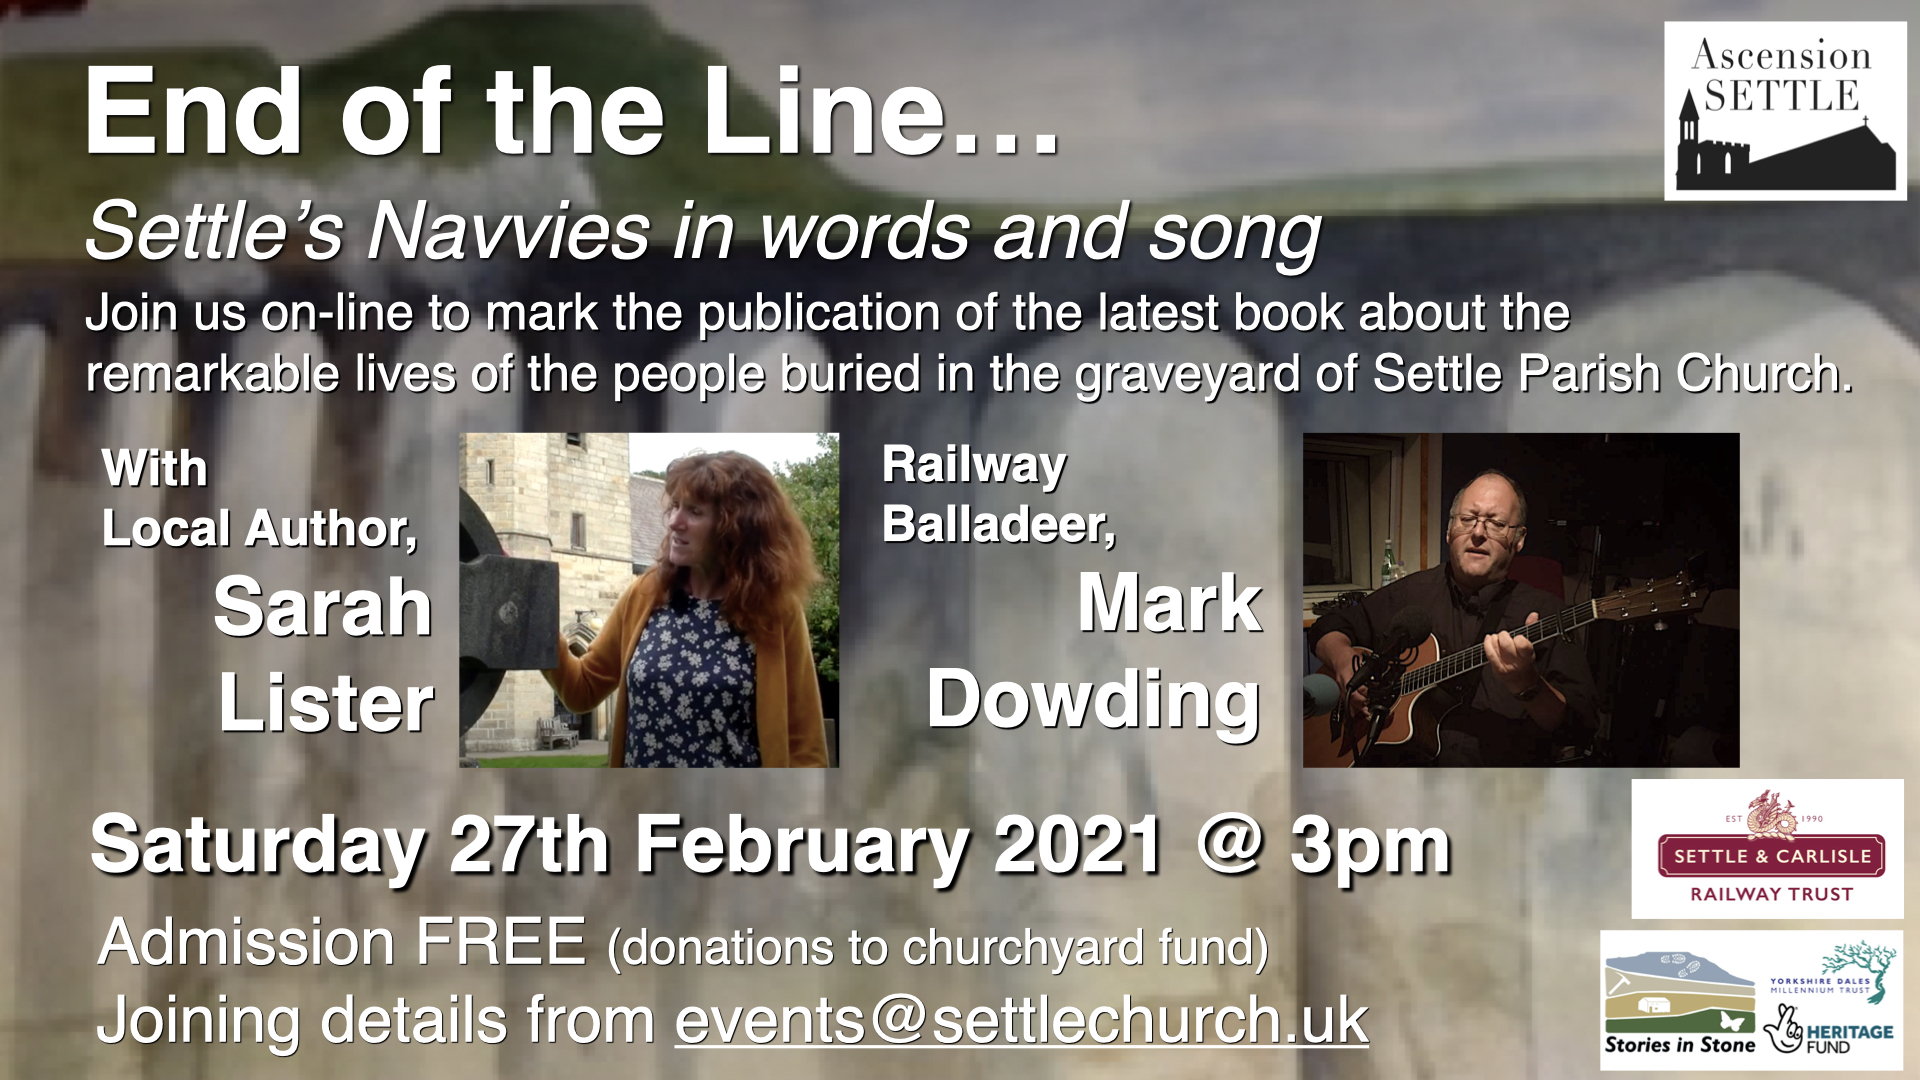 End of the Line - a celebration of Settle's navvies